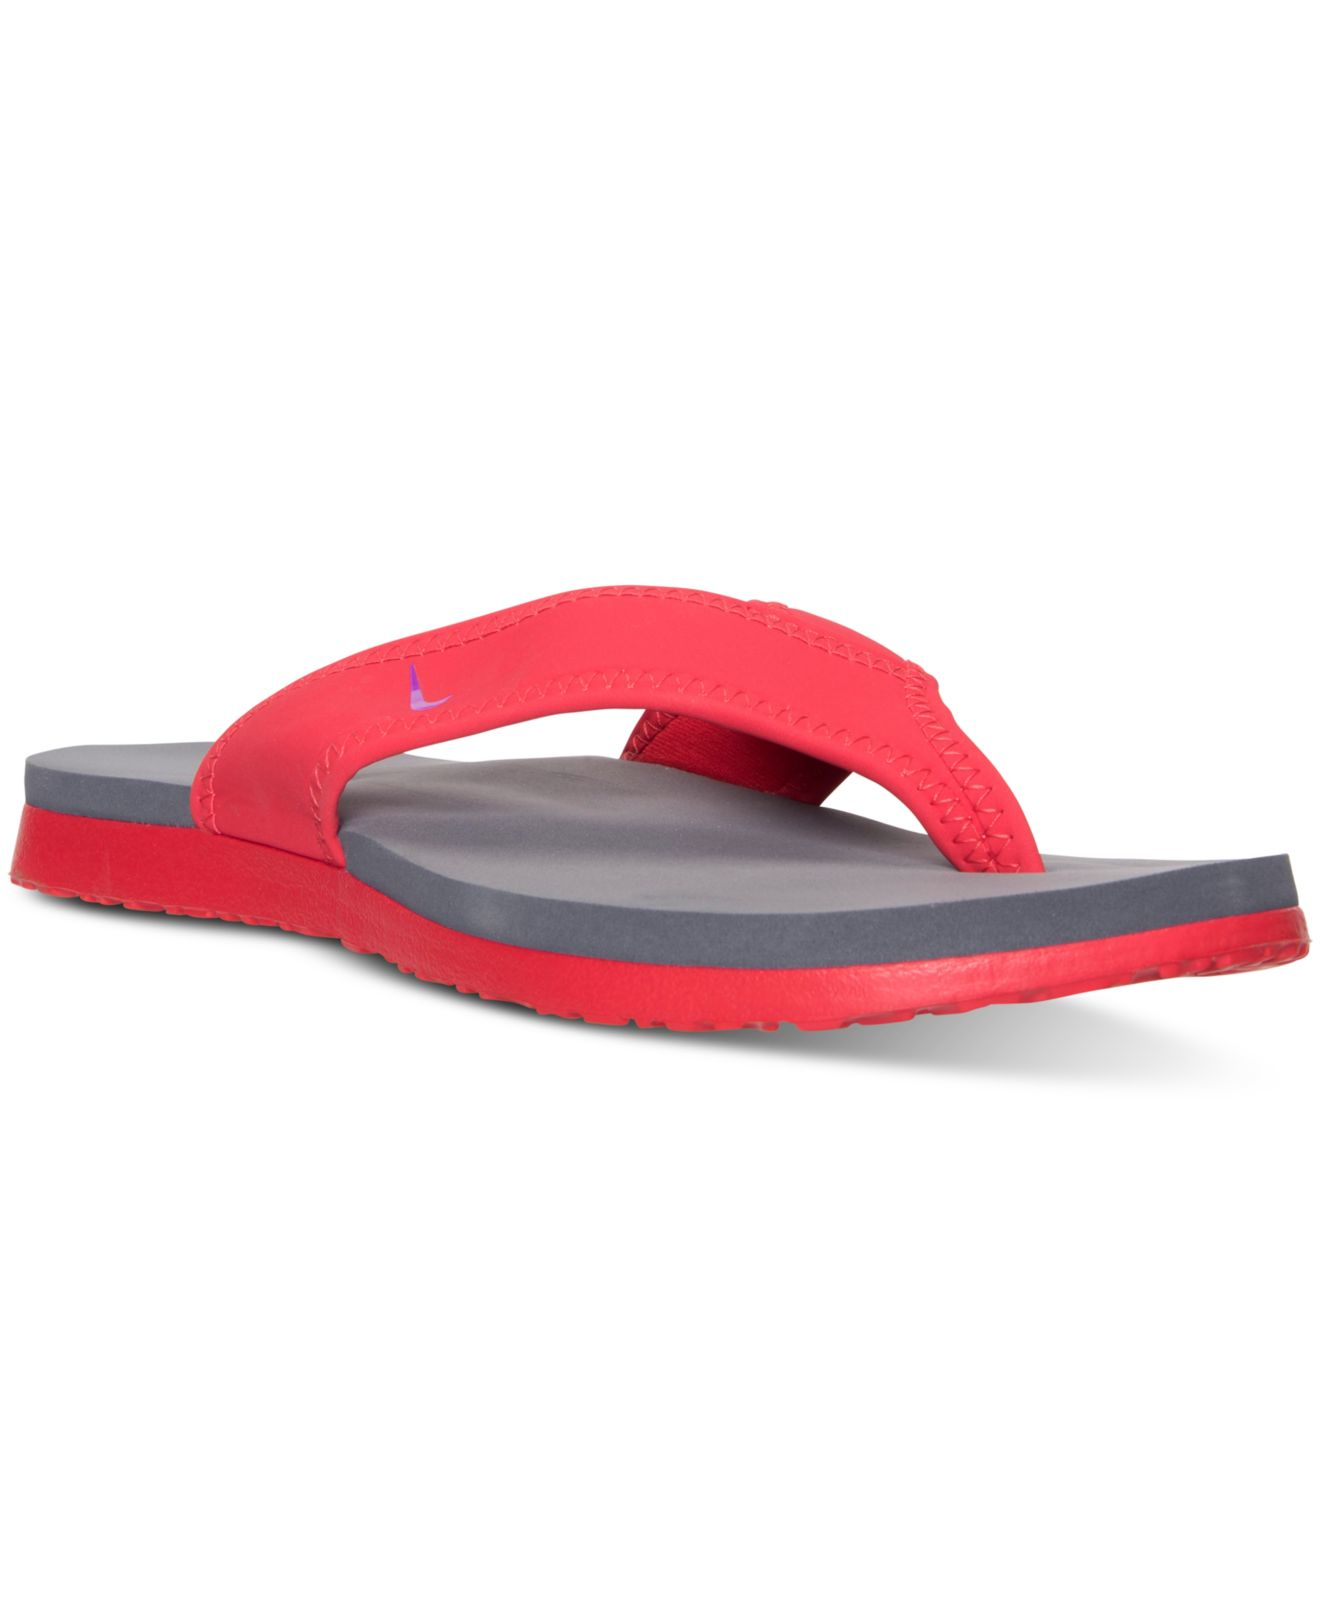 Lyst - Nike Men s Celso Plus Thong Sandals From Finish Line in Red for Men a46169f9f